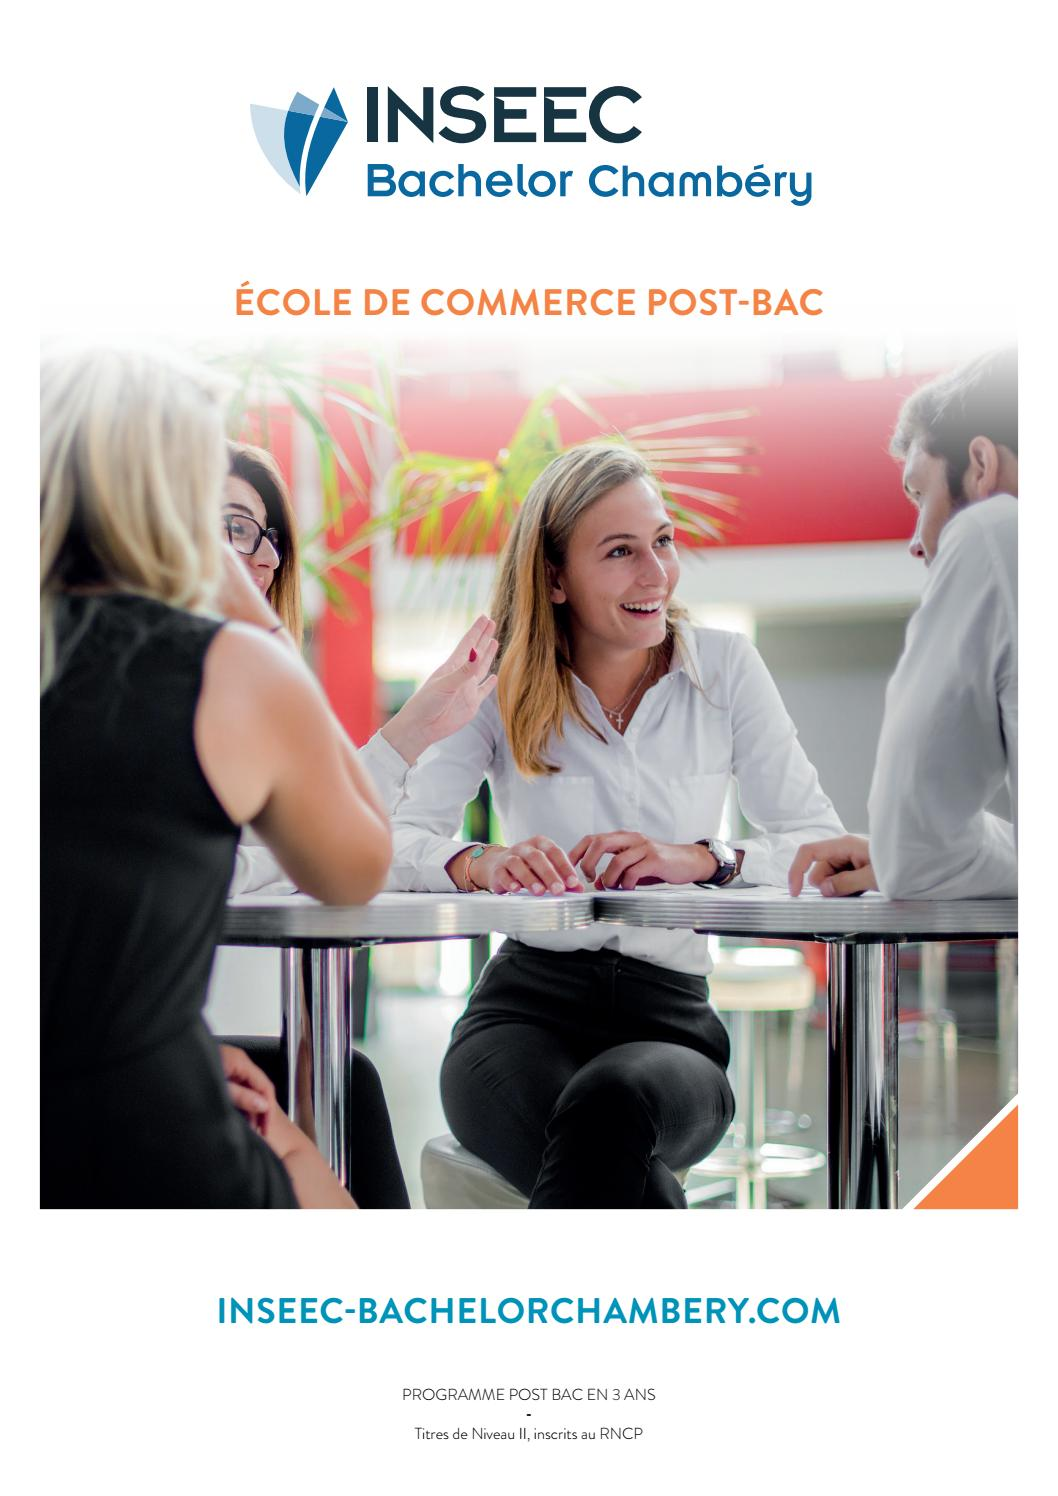 Brochure Inseec Bachelor Chambery Post Bac By O Et D Issuu